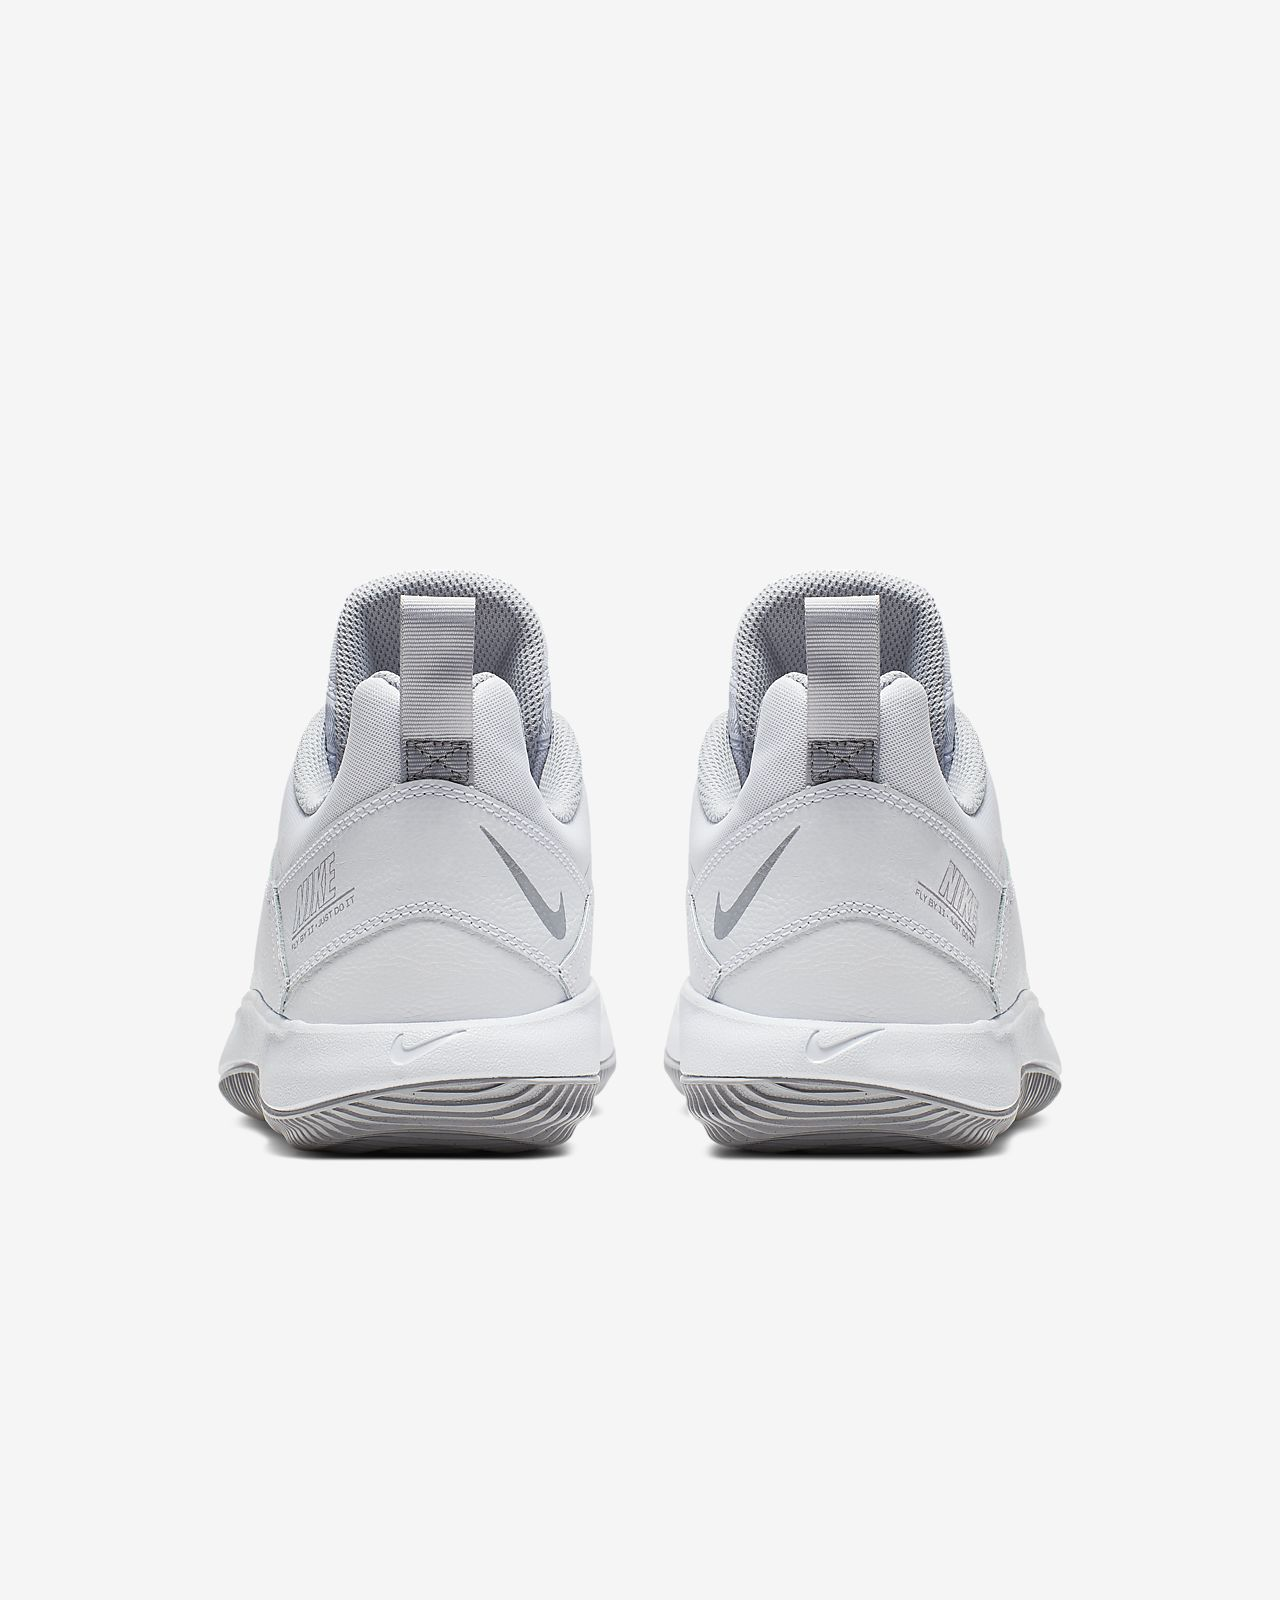 finest selection 76fc2 5e8cc By Low II Basketball Shoe Nike Fly.By Low II Basketball Shoe